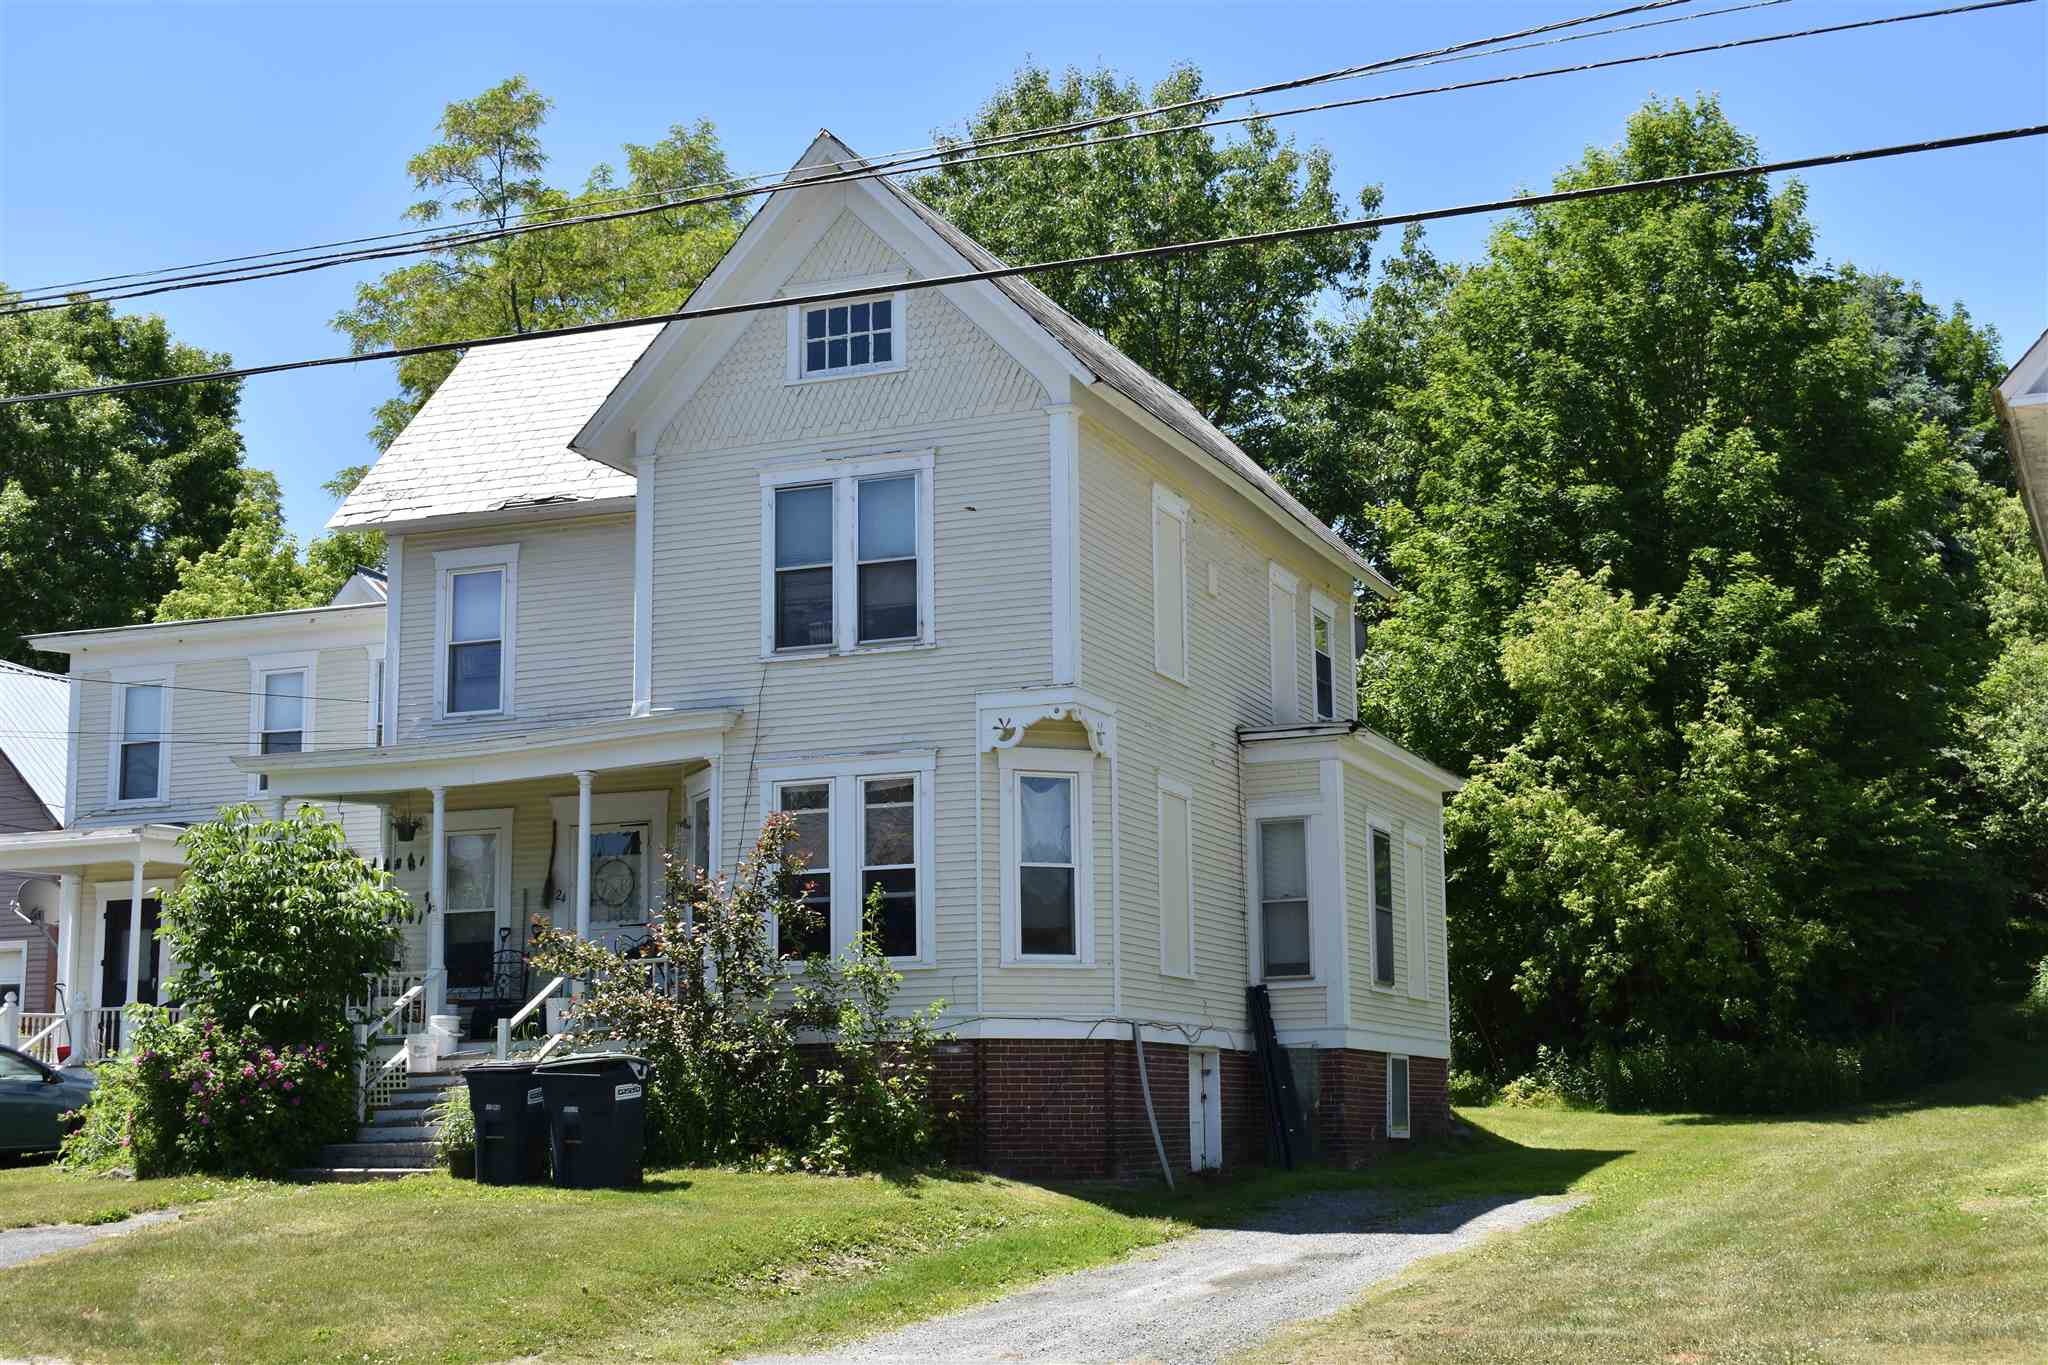 ENFIELD NH Multi Family Homes for sale